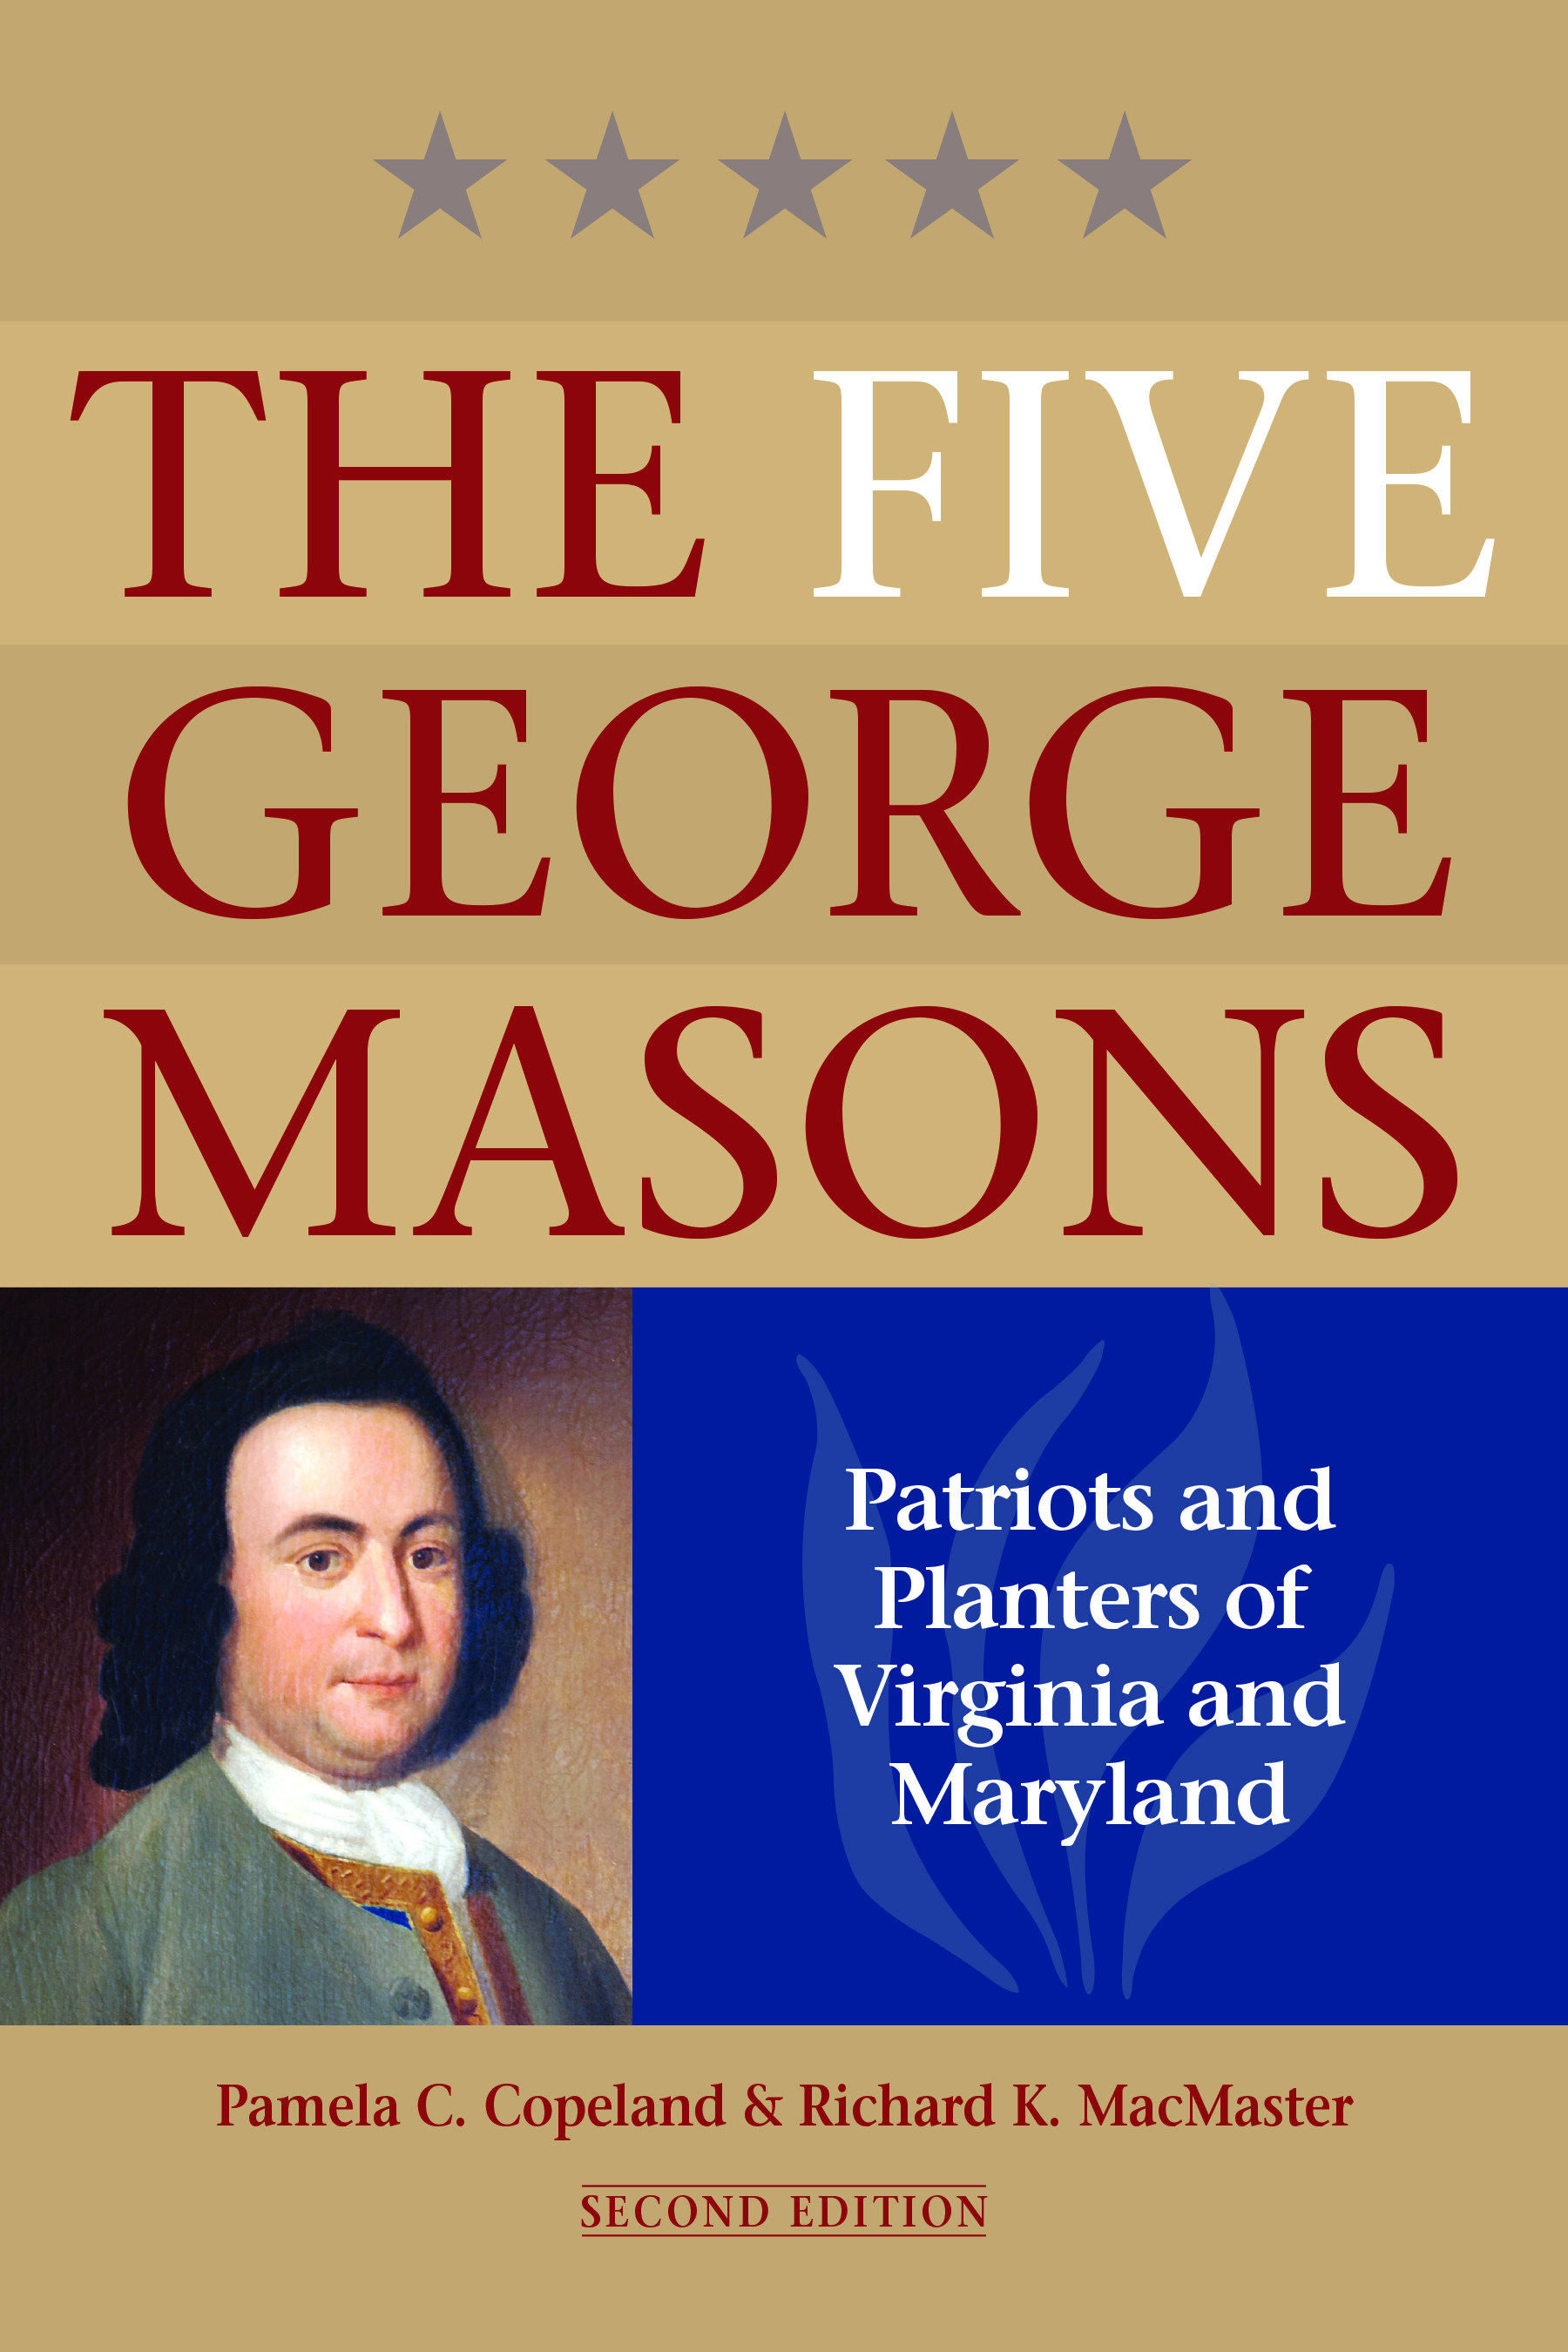 Cover of The Five George Masons, featuring a portrait of George Mason IV.